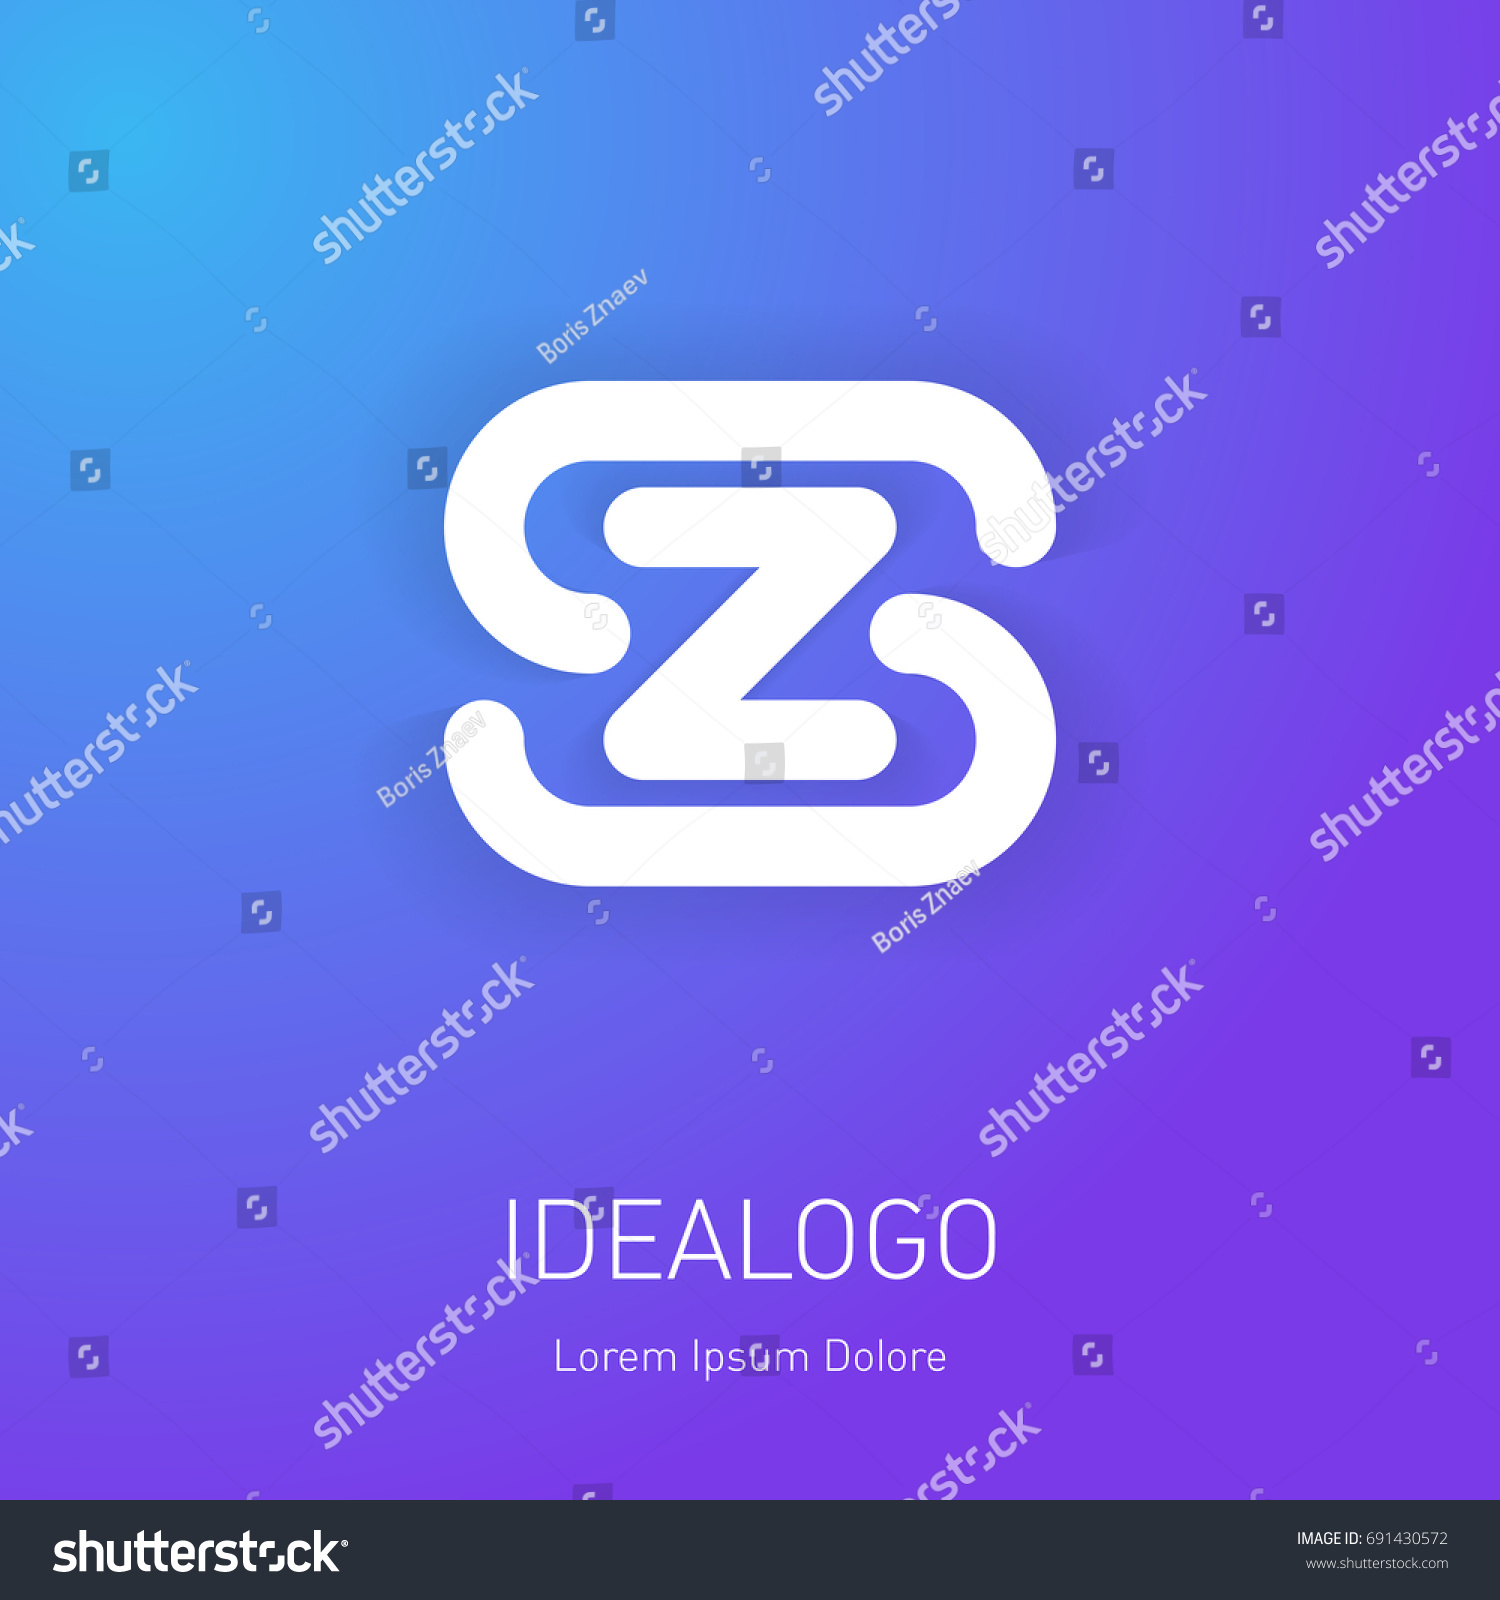 Logo Template Letters S Z On Stock Vector 691430572 Shutterstock